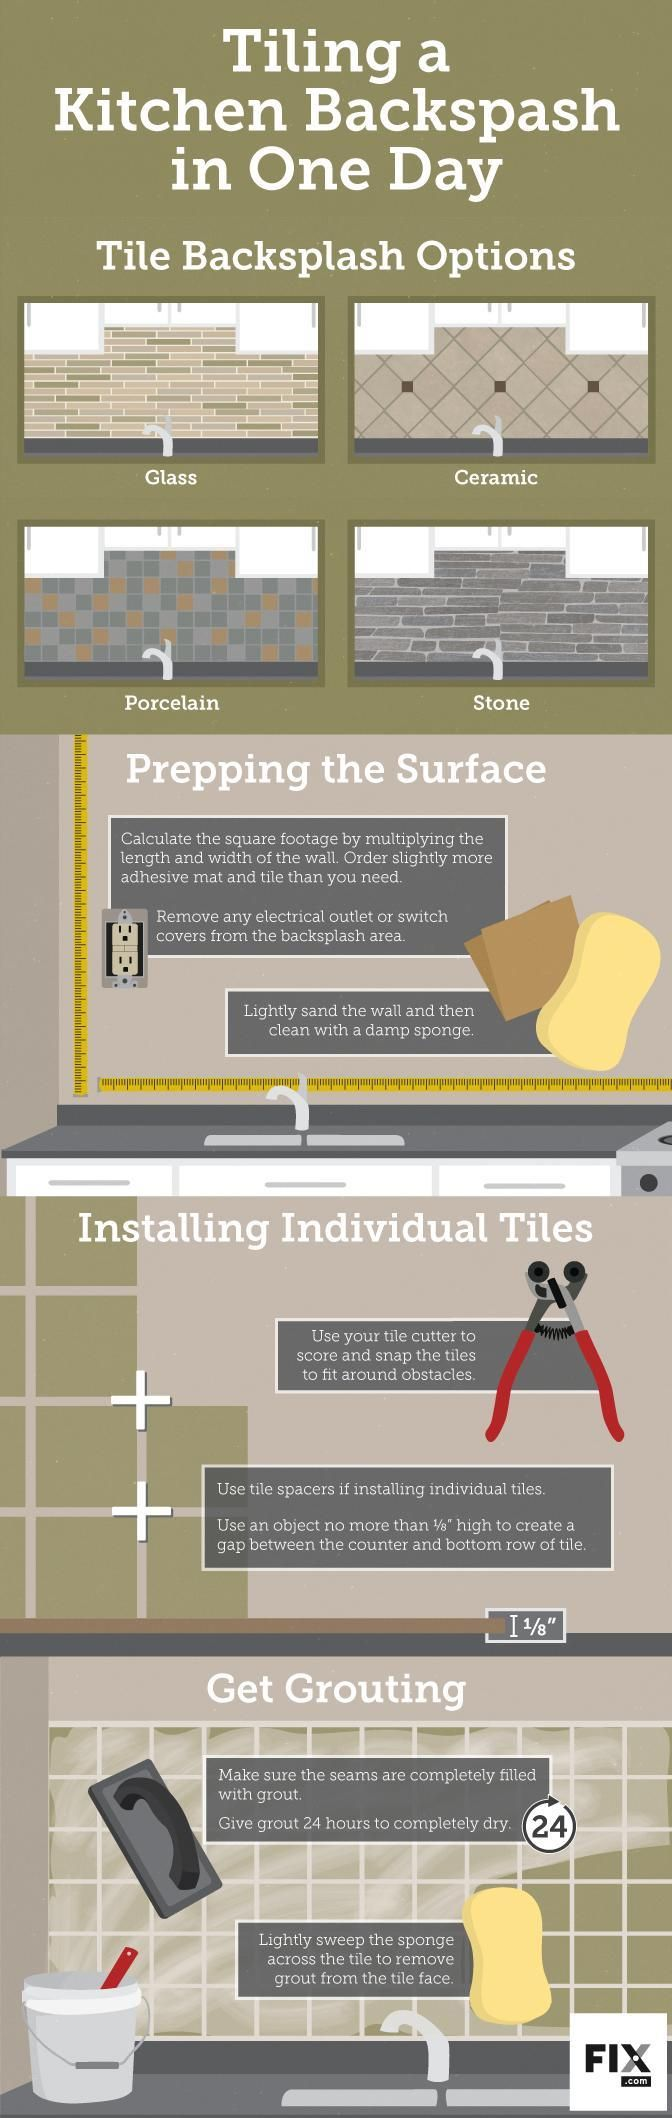 Afraid of tackling that kitchen remodel? We hear ya. It's no easy task, but there are some projects that you can complete in a short period of time and will provide a HUGE improvement. Like a backsplash. While it may seem like an overwhelming project, all you need is one day, and some help from our friends over at @fixdotcom